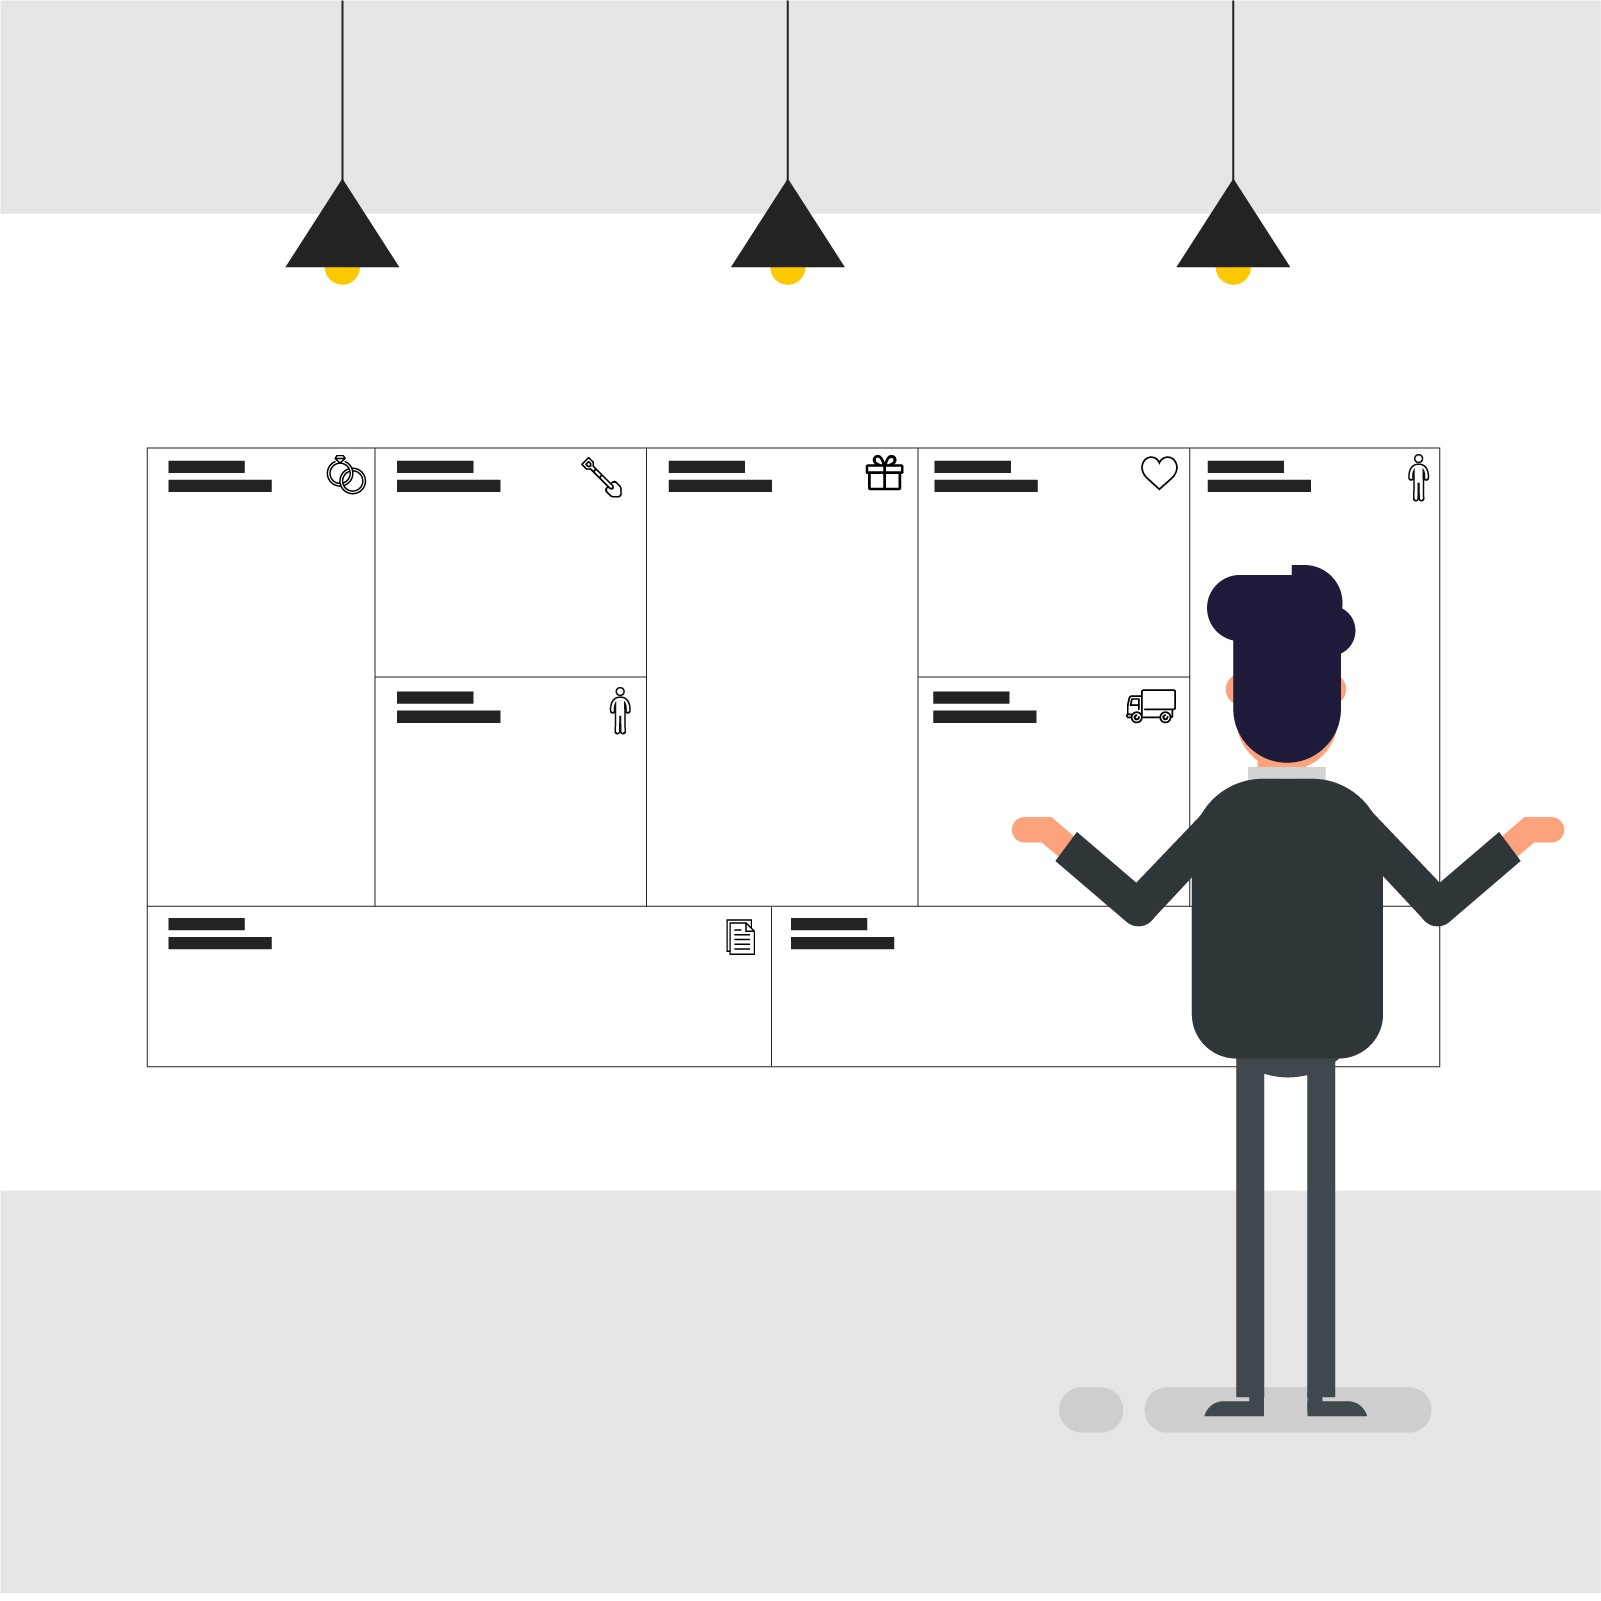 Demystifying the Business Model Canvas